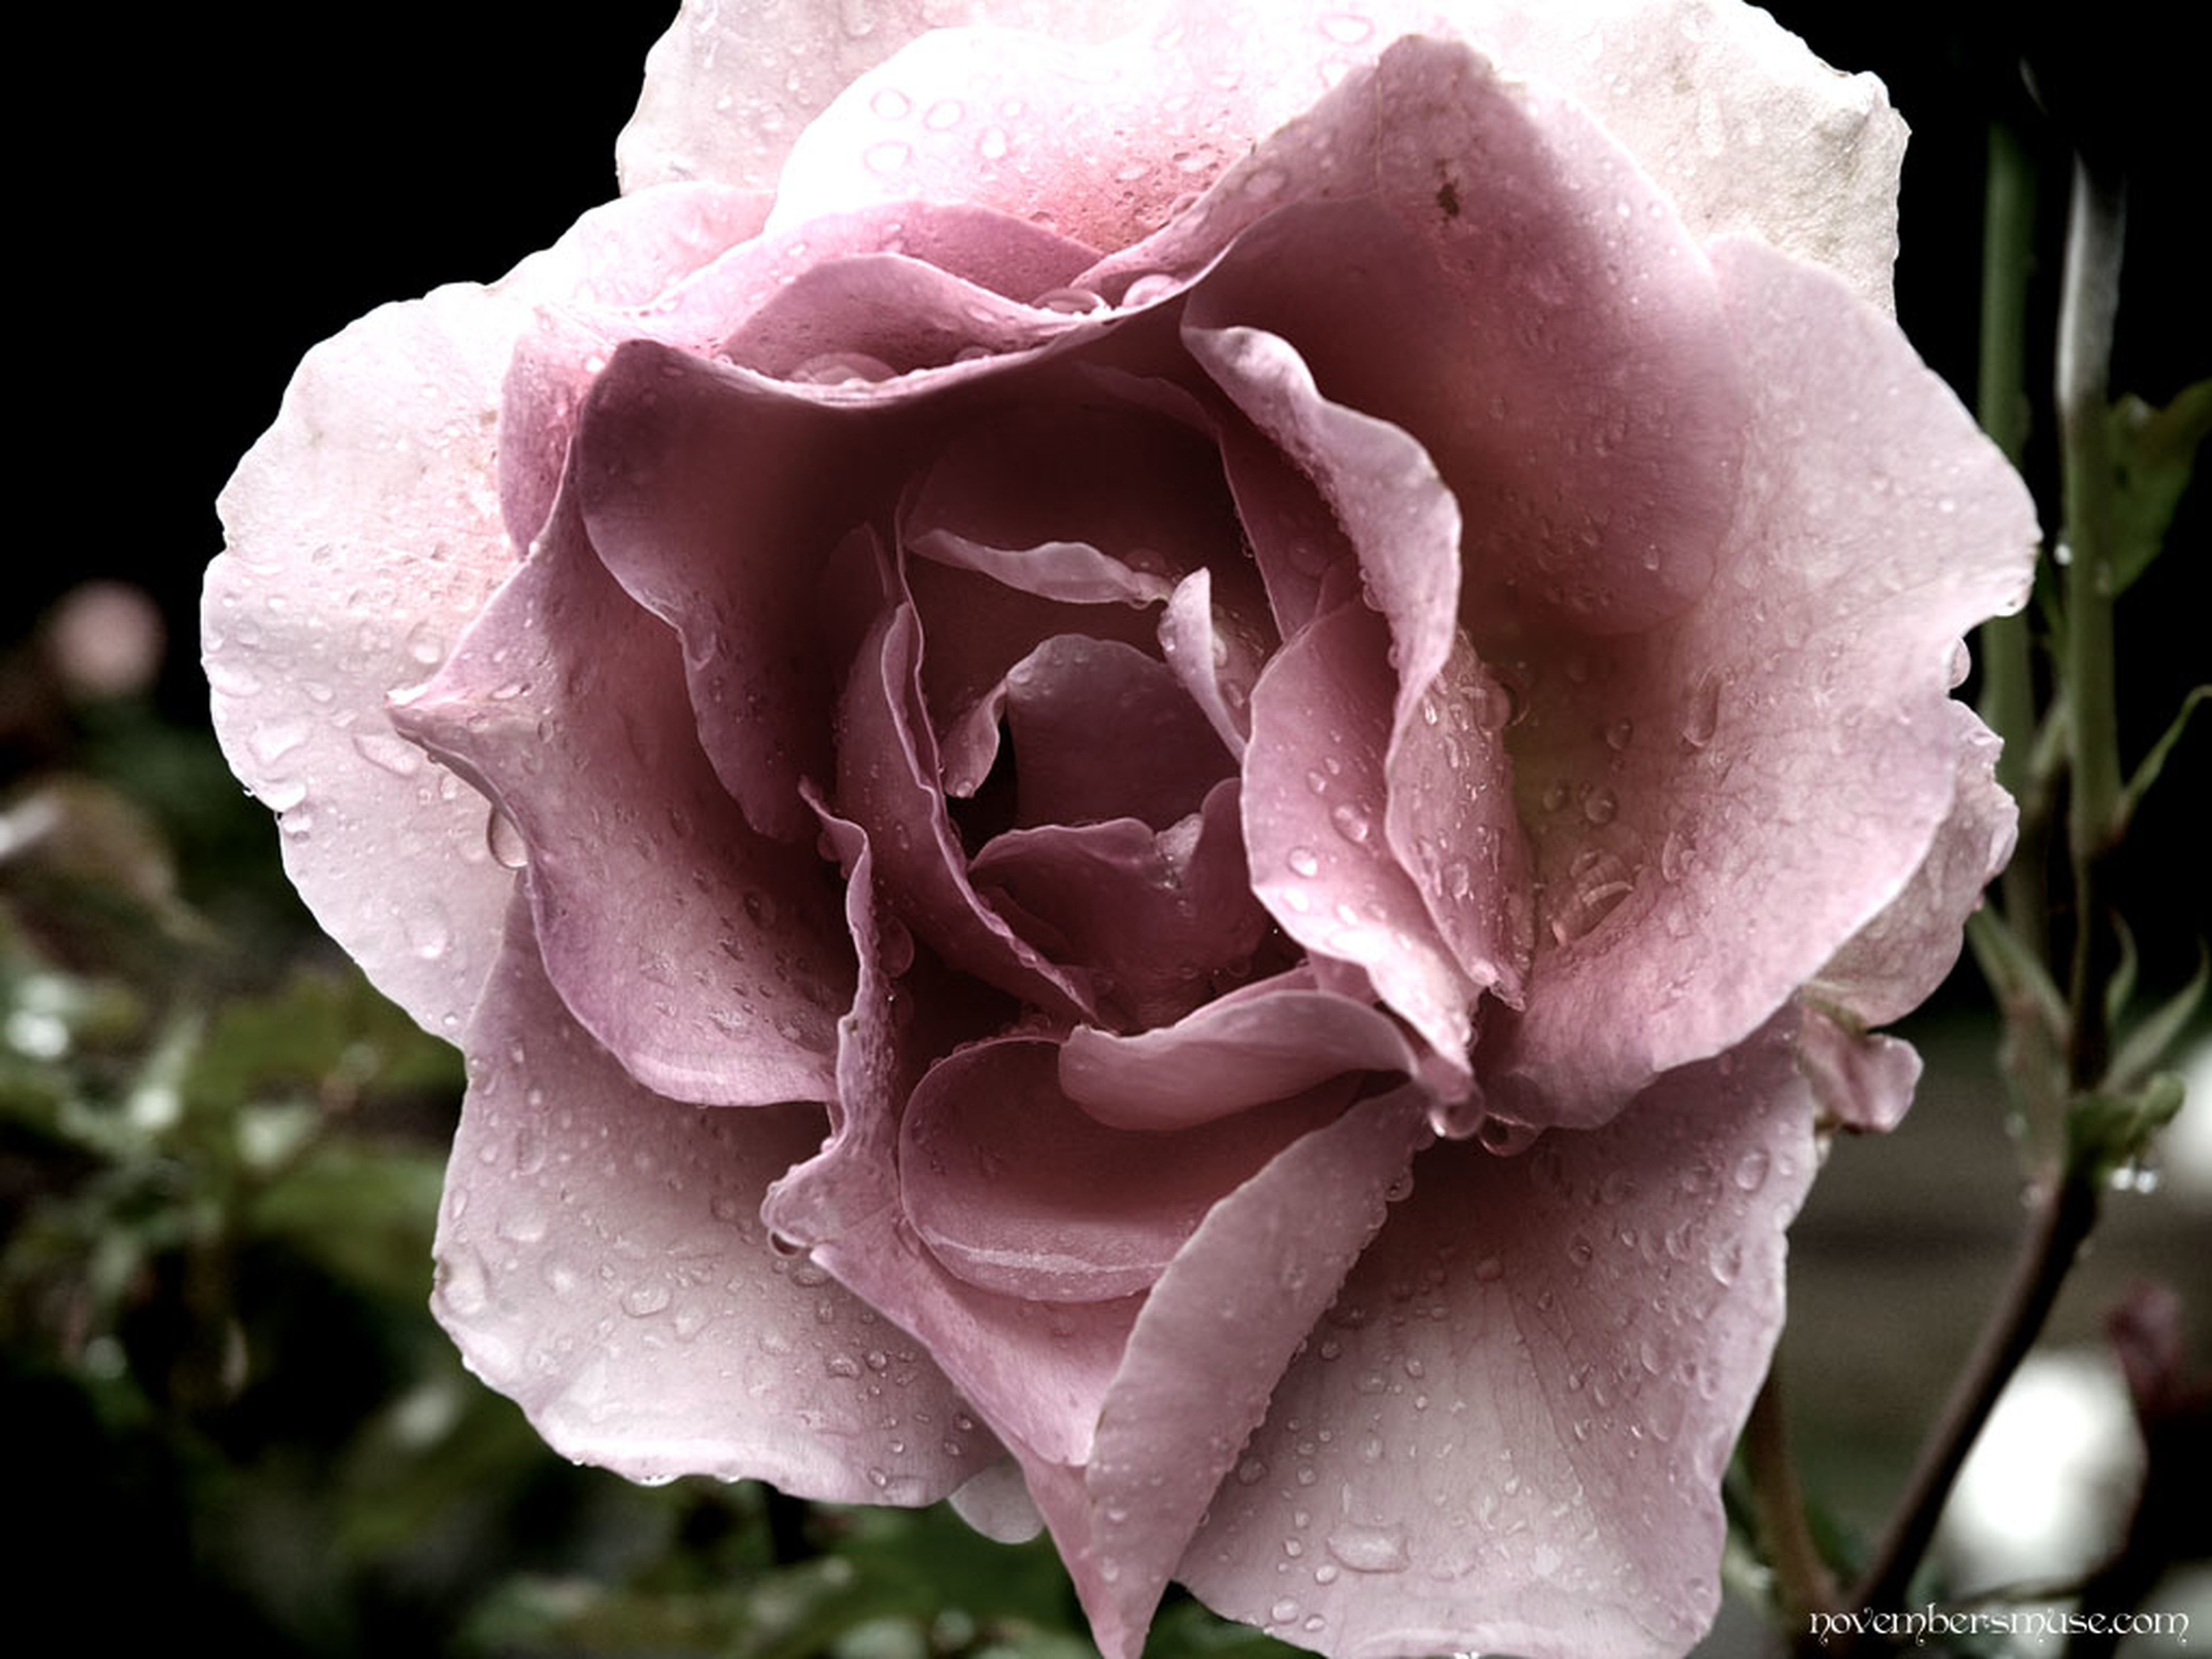 flower, petal, fragility, rose - flower, flower head, freshness, close-up, drop, beauty in nature, wet, growth, blooming, single flower, focus on foreground, nature, rose, water, in bloom, single rose, dew